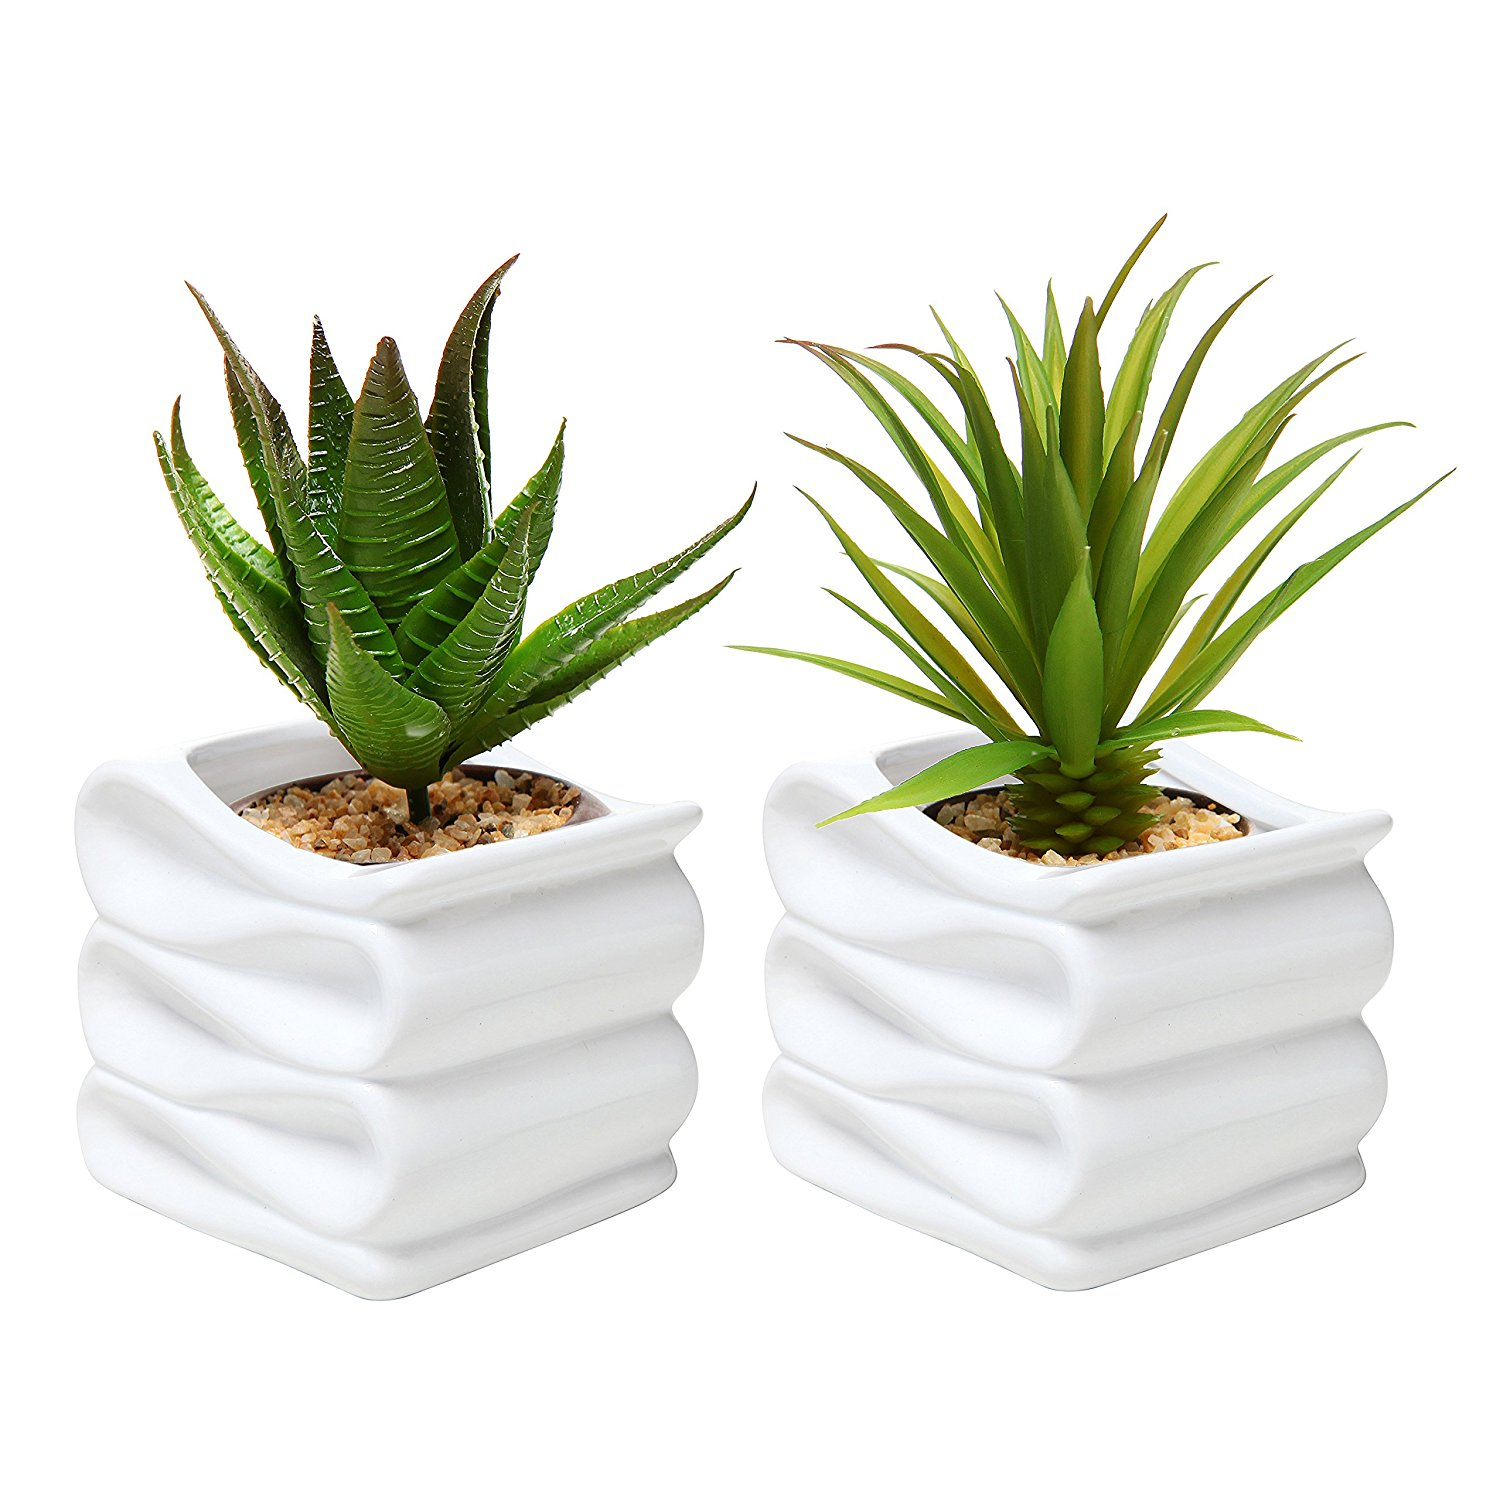 Amazon.com: MyGift Set of 2 Modern Decorative Folded Design Small ...